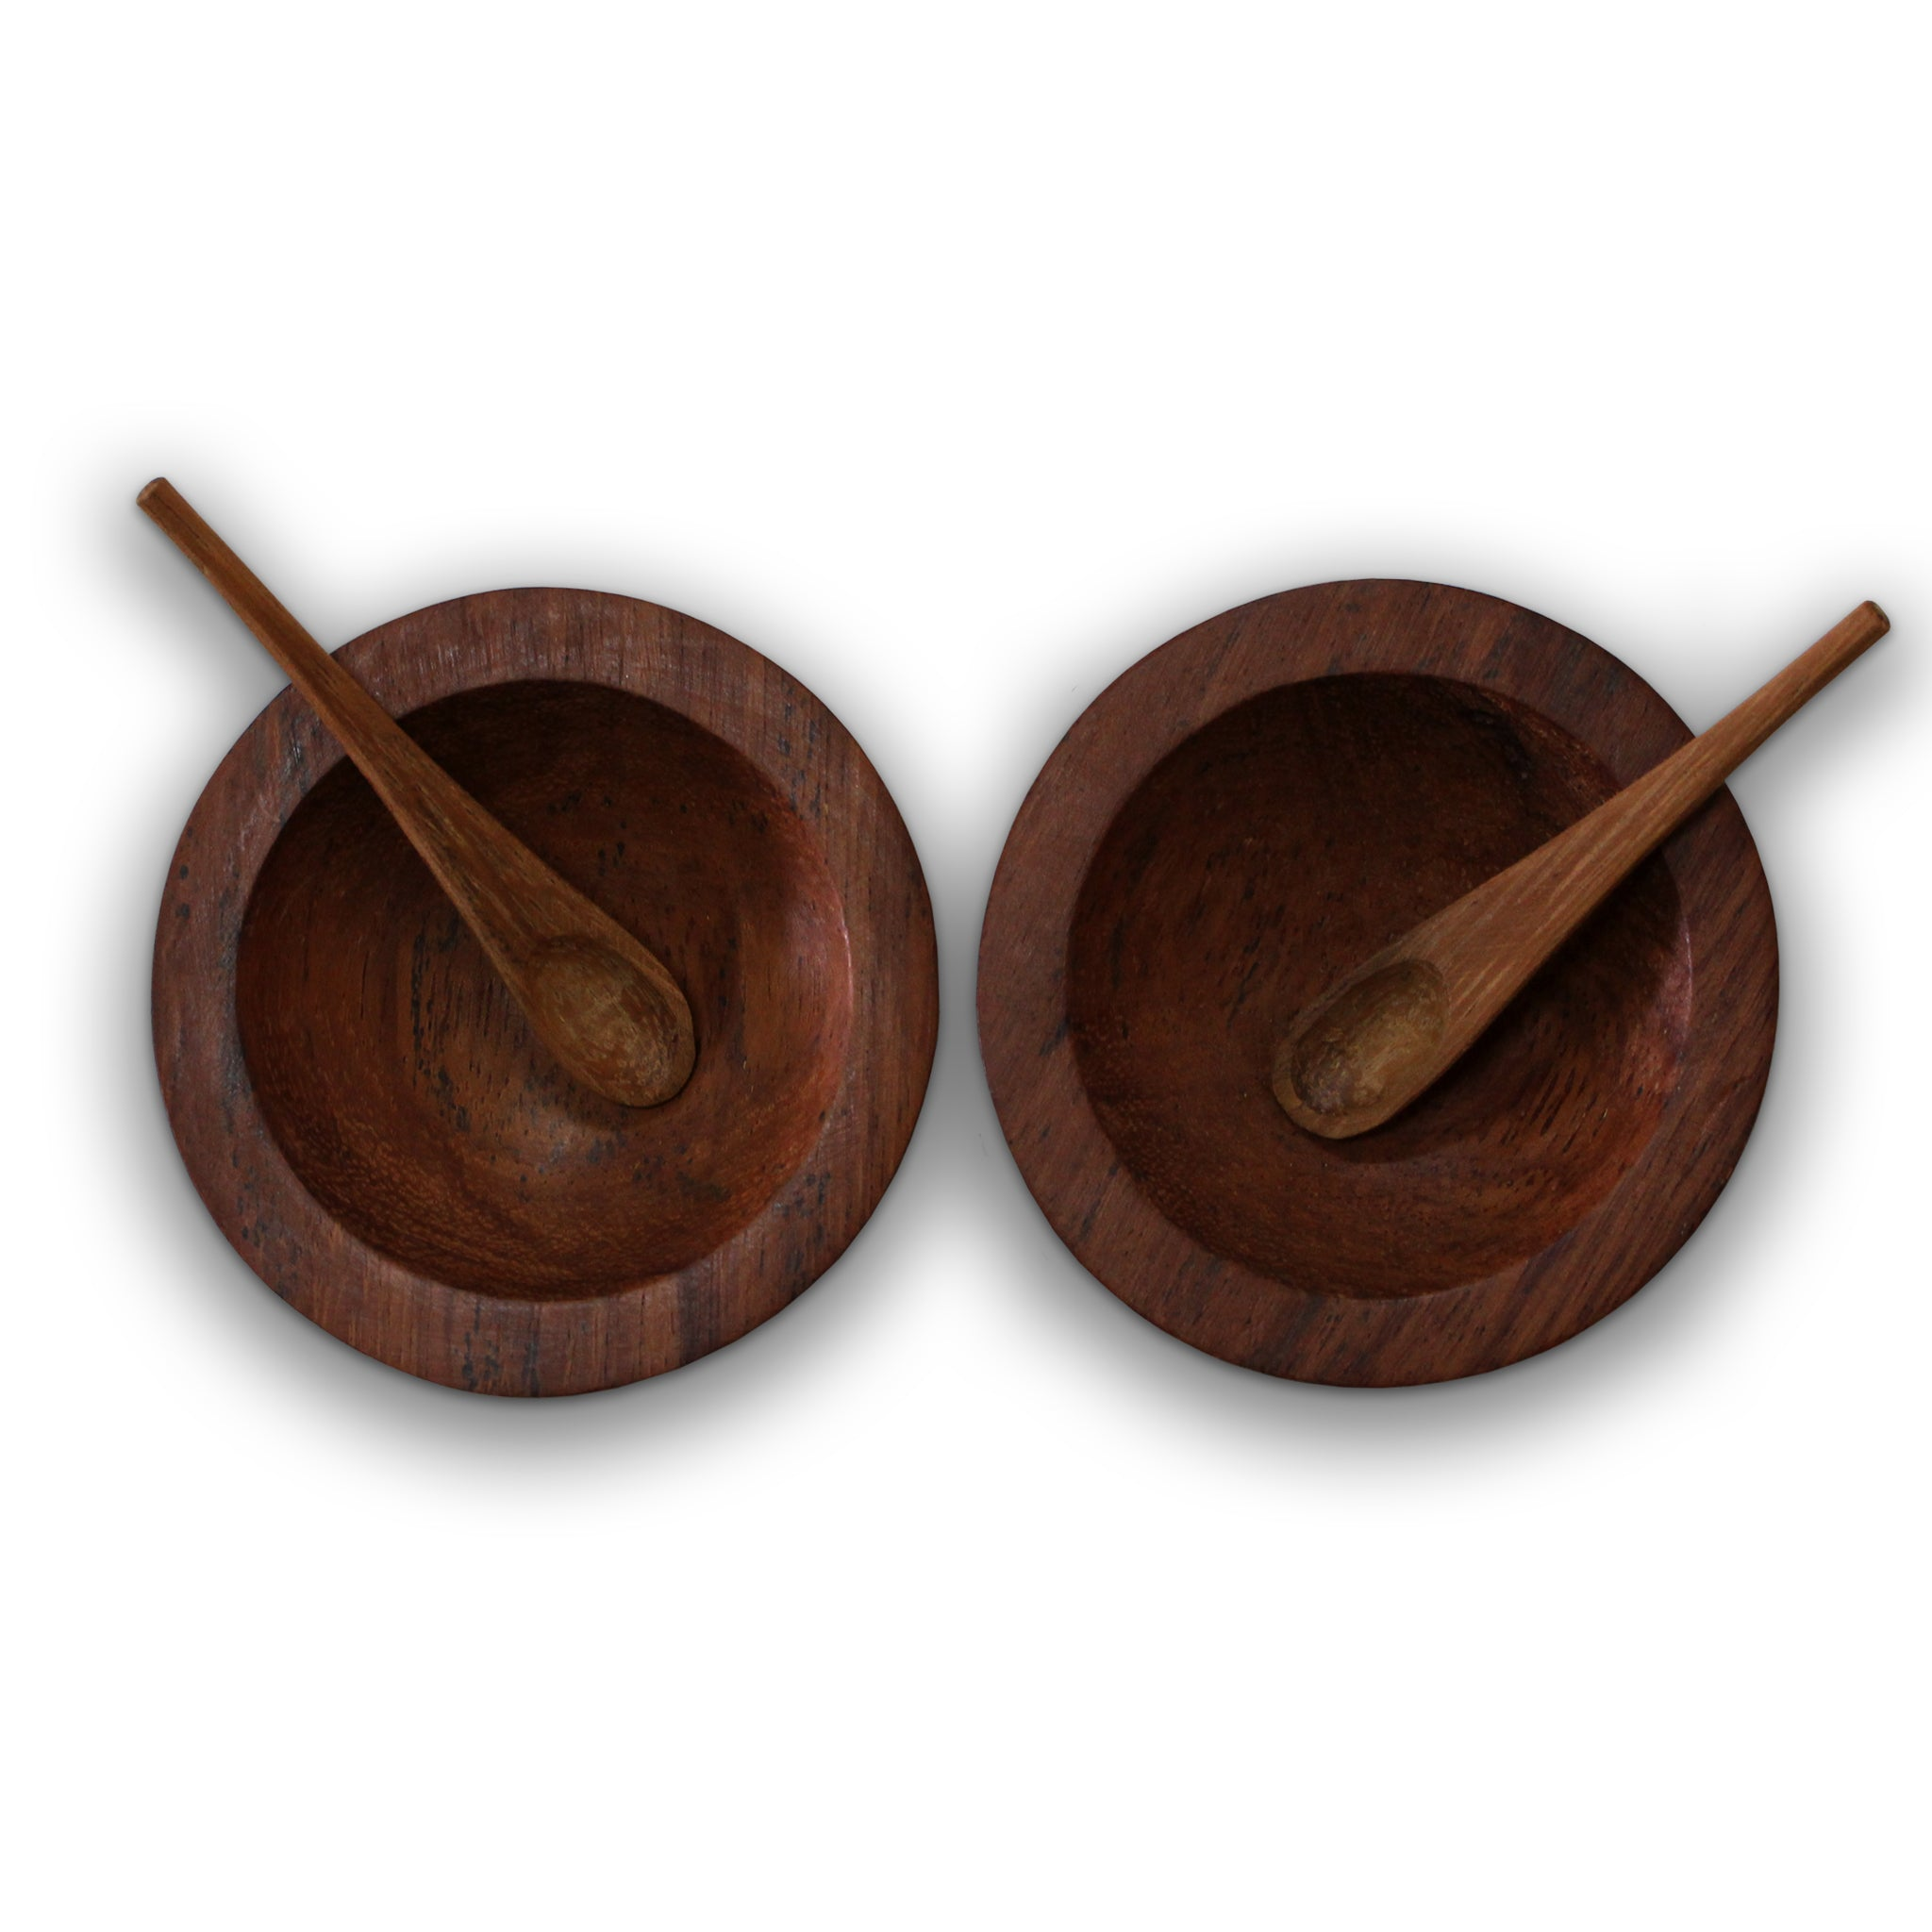 Tanoa Salt & Pepper Holder Set